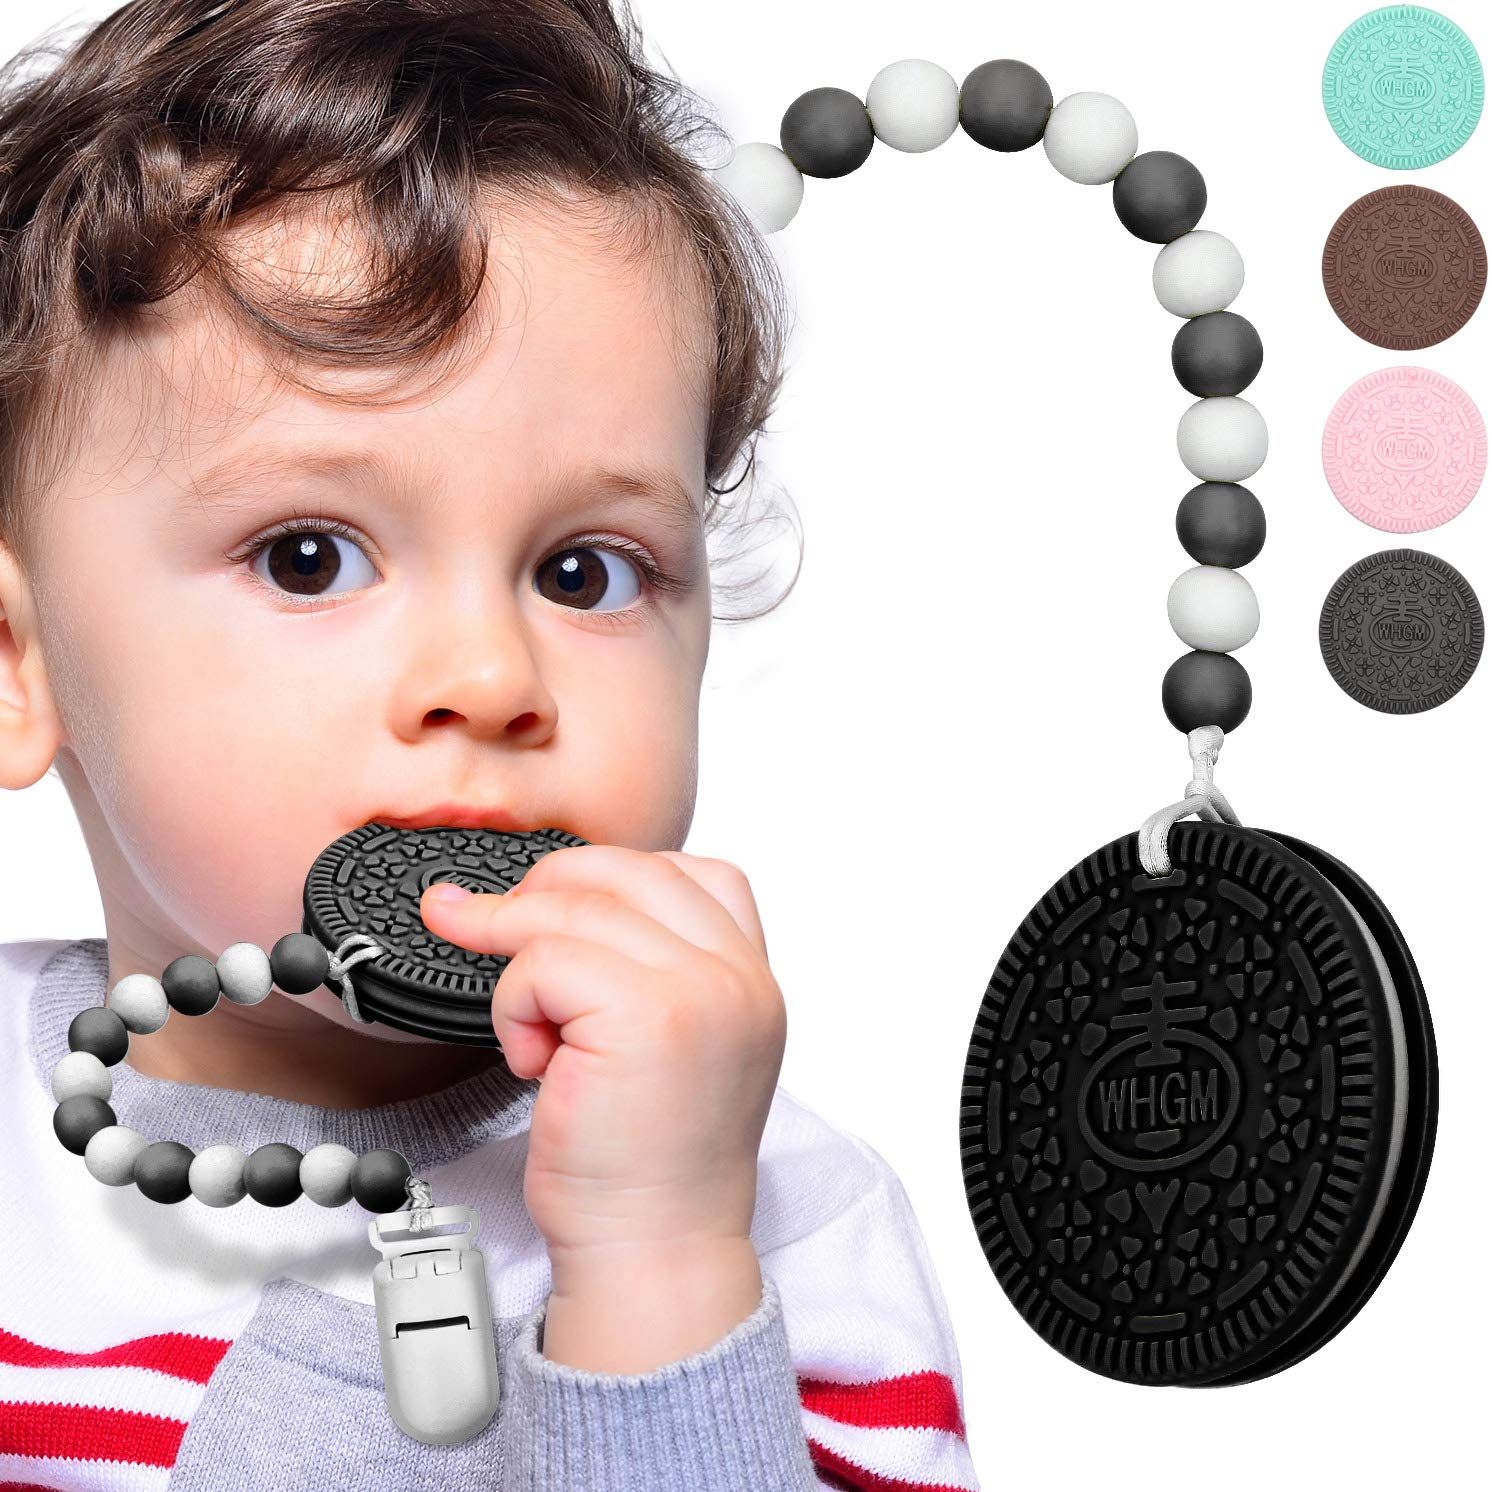 Baby Teether Teething Cookie Toys Silicone Teething Biscuit for with Teething Pacifier Clip Holder and Carry Box, Food-Grade Silicone BPA-Free Infant Toy for 0-24 Months Baby Boys & Girl (Black)